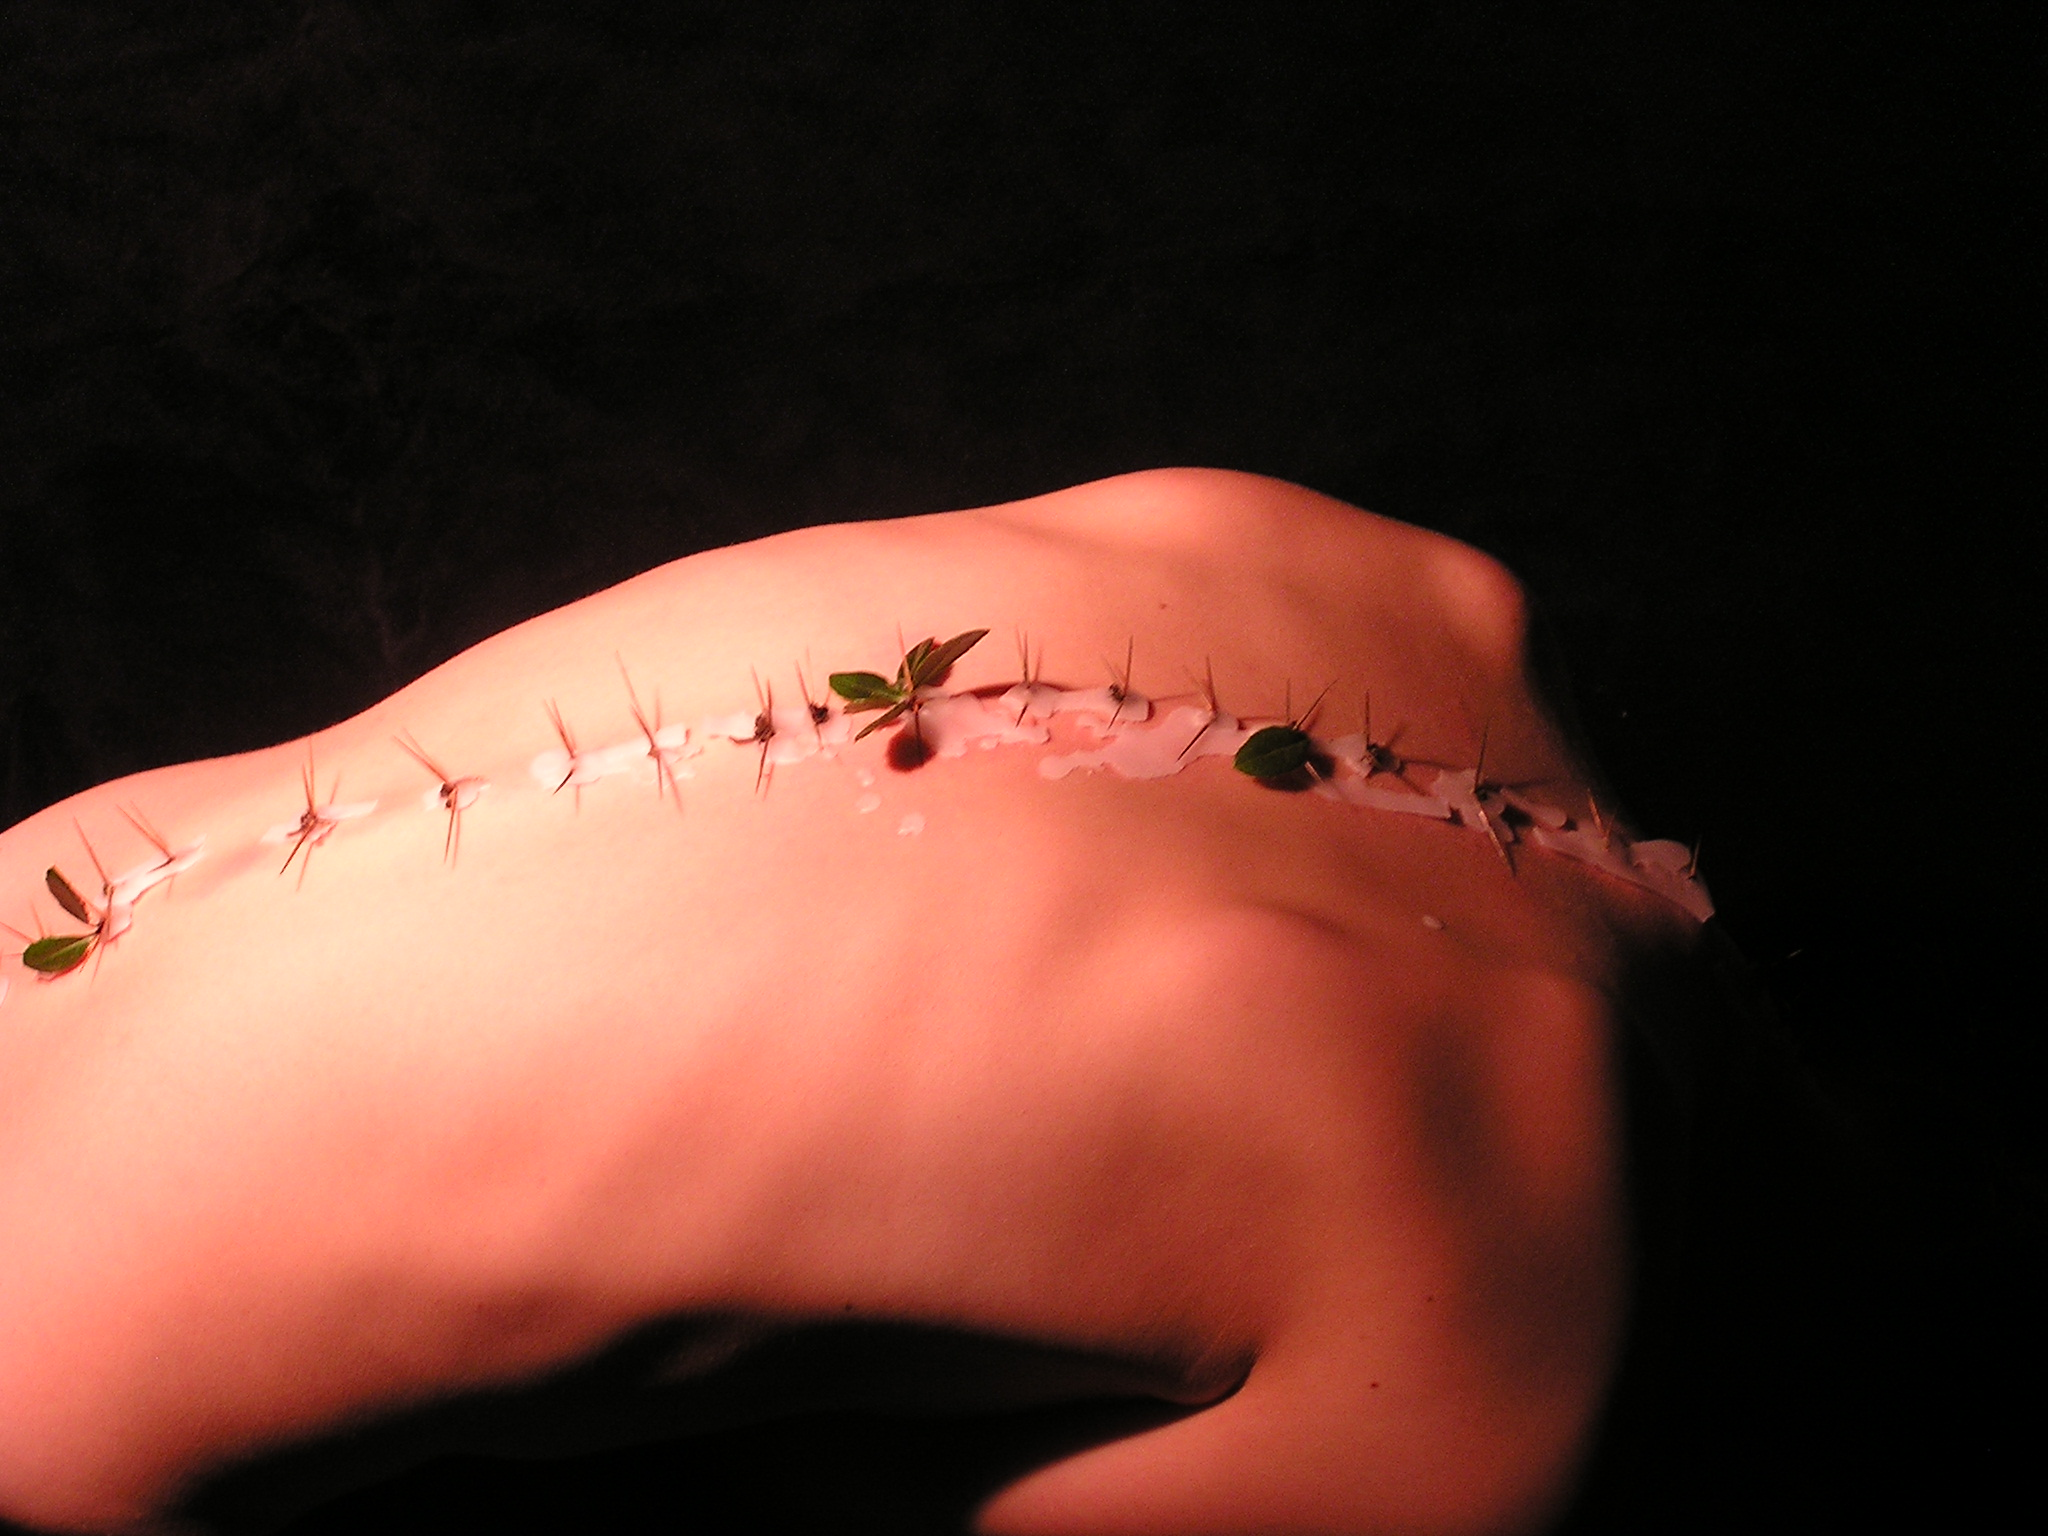 """thorn/spine"" embodiment experiment by D. Allen, executed and documented in collaboration with Hannah Sabri Barco and Andrew Barco, Durham, North Carolina, 2006"